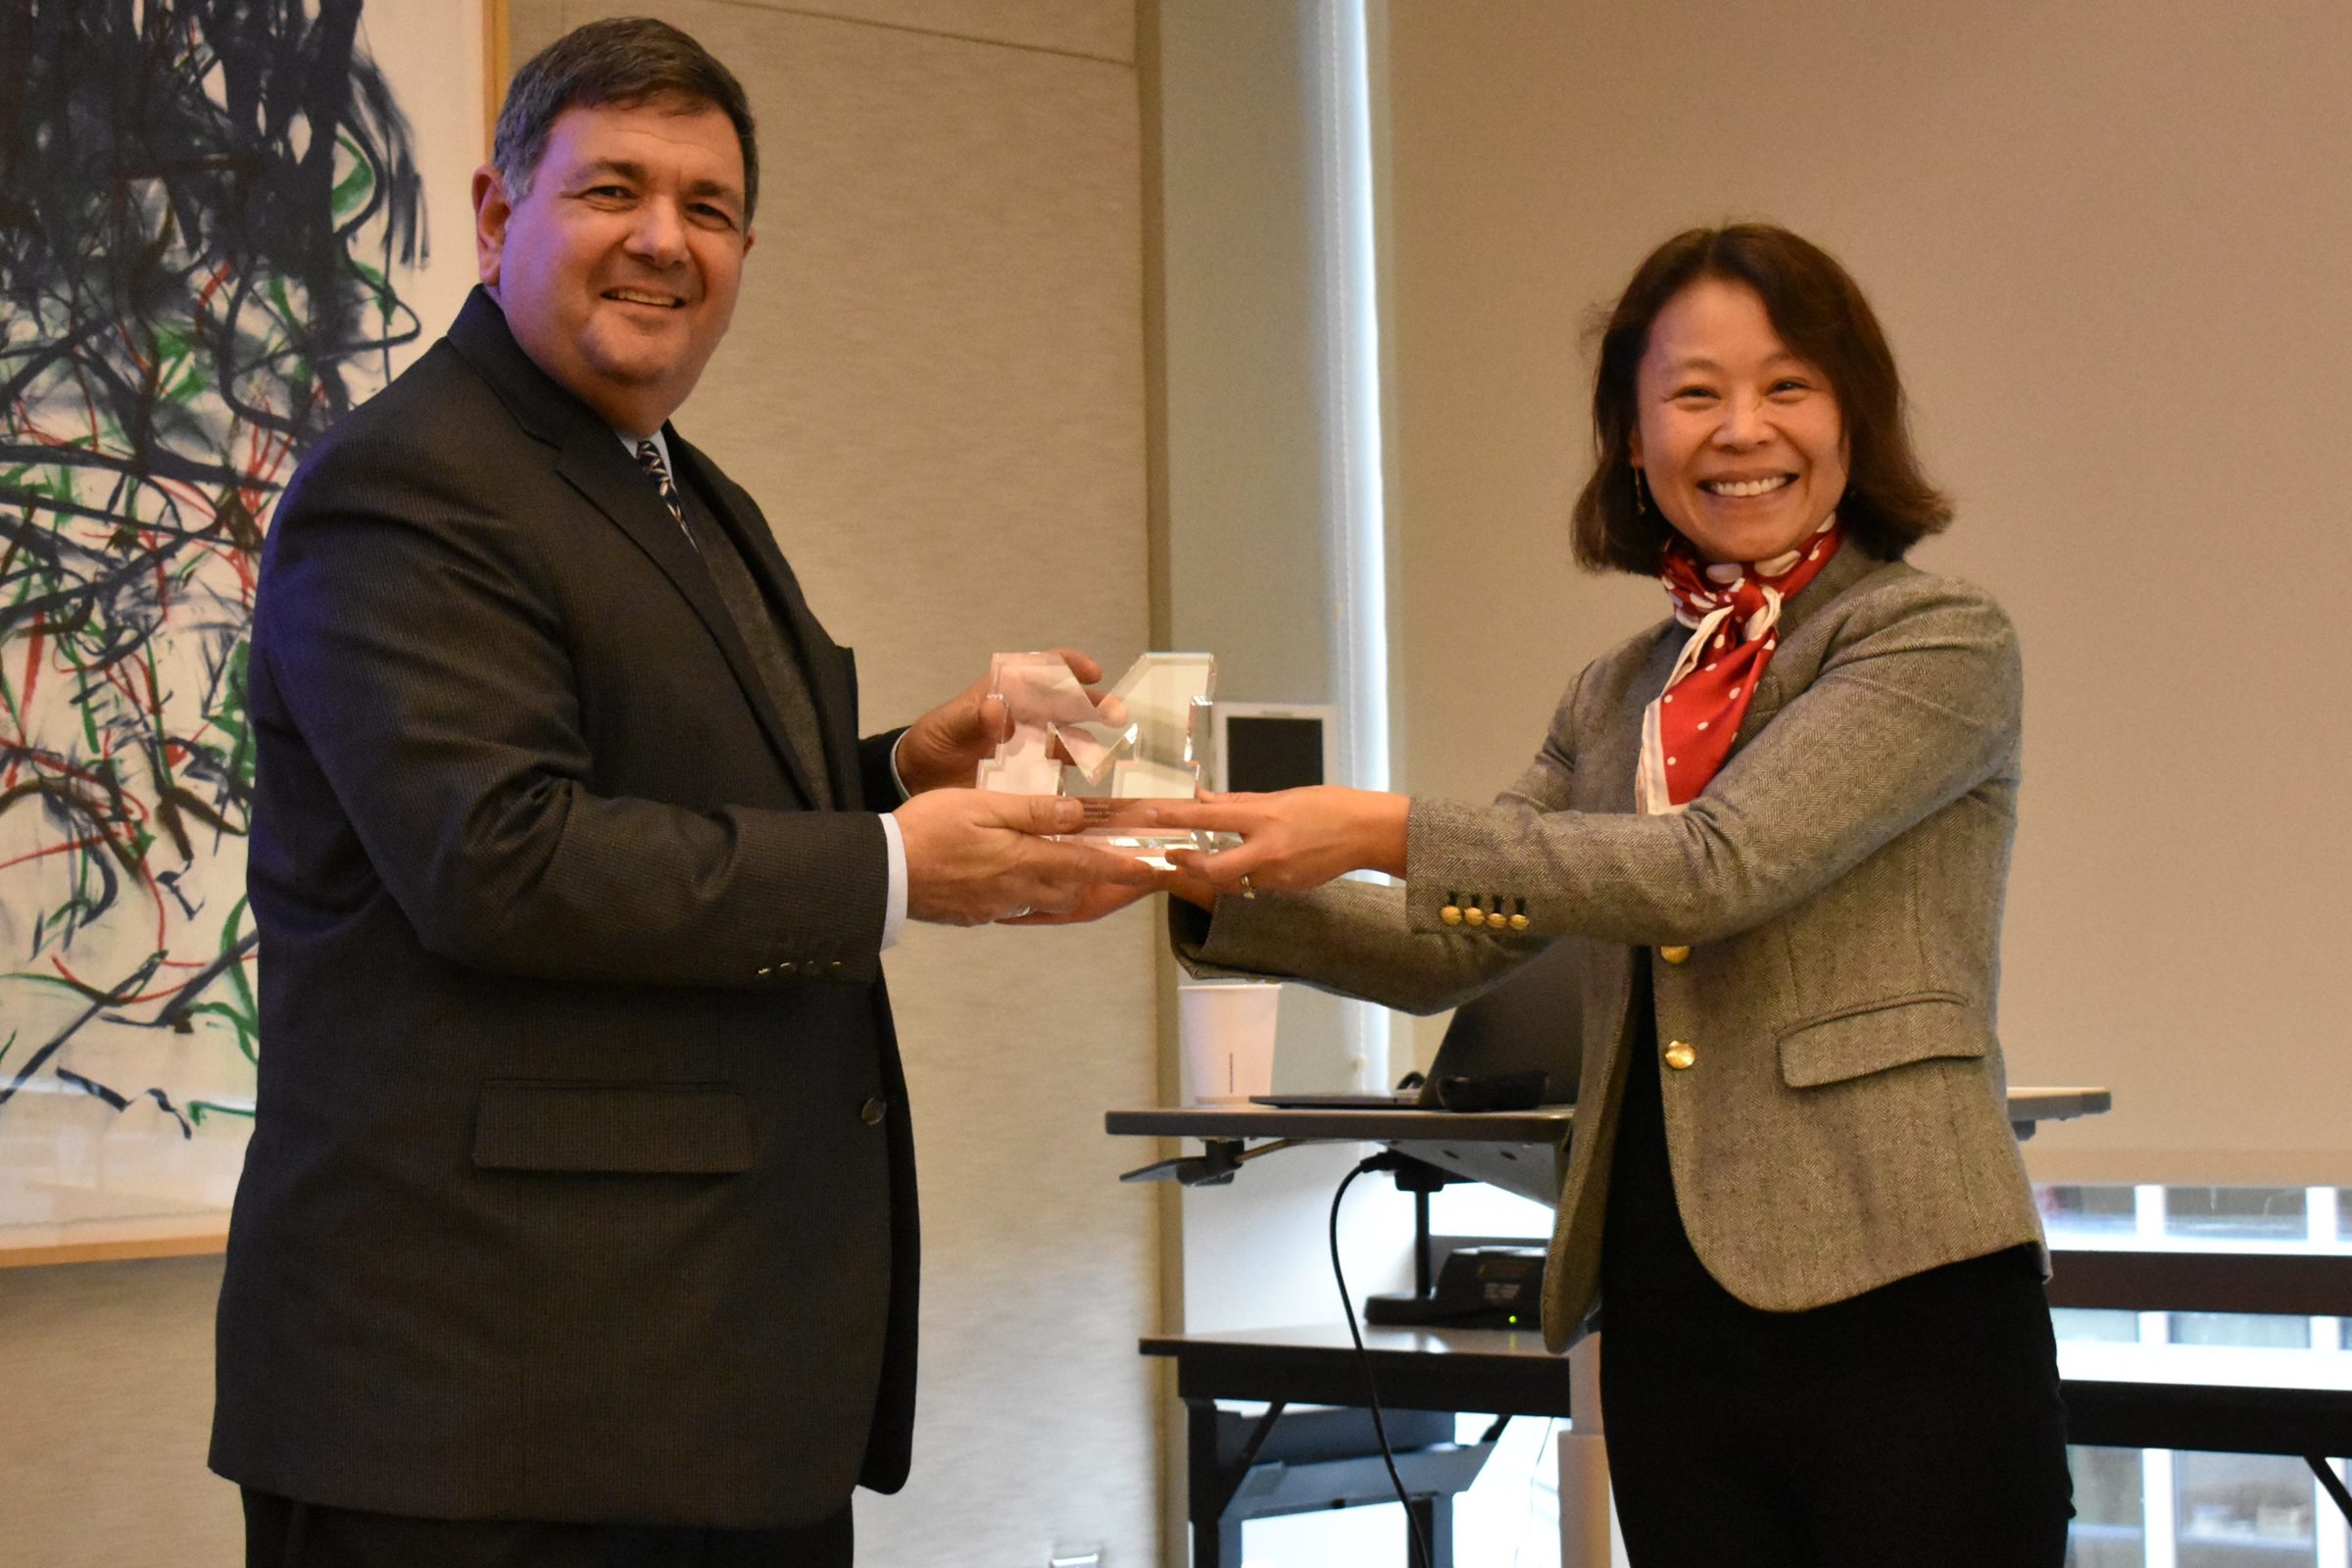 Mingyan Liu presents the Honorable Zachary Lemnios with the ECE Alumni Impact Award